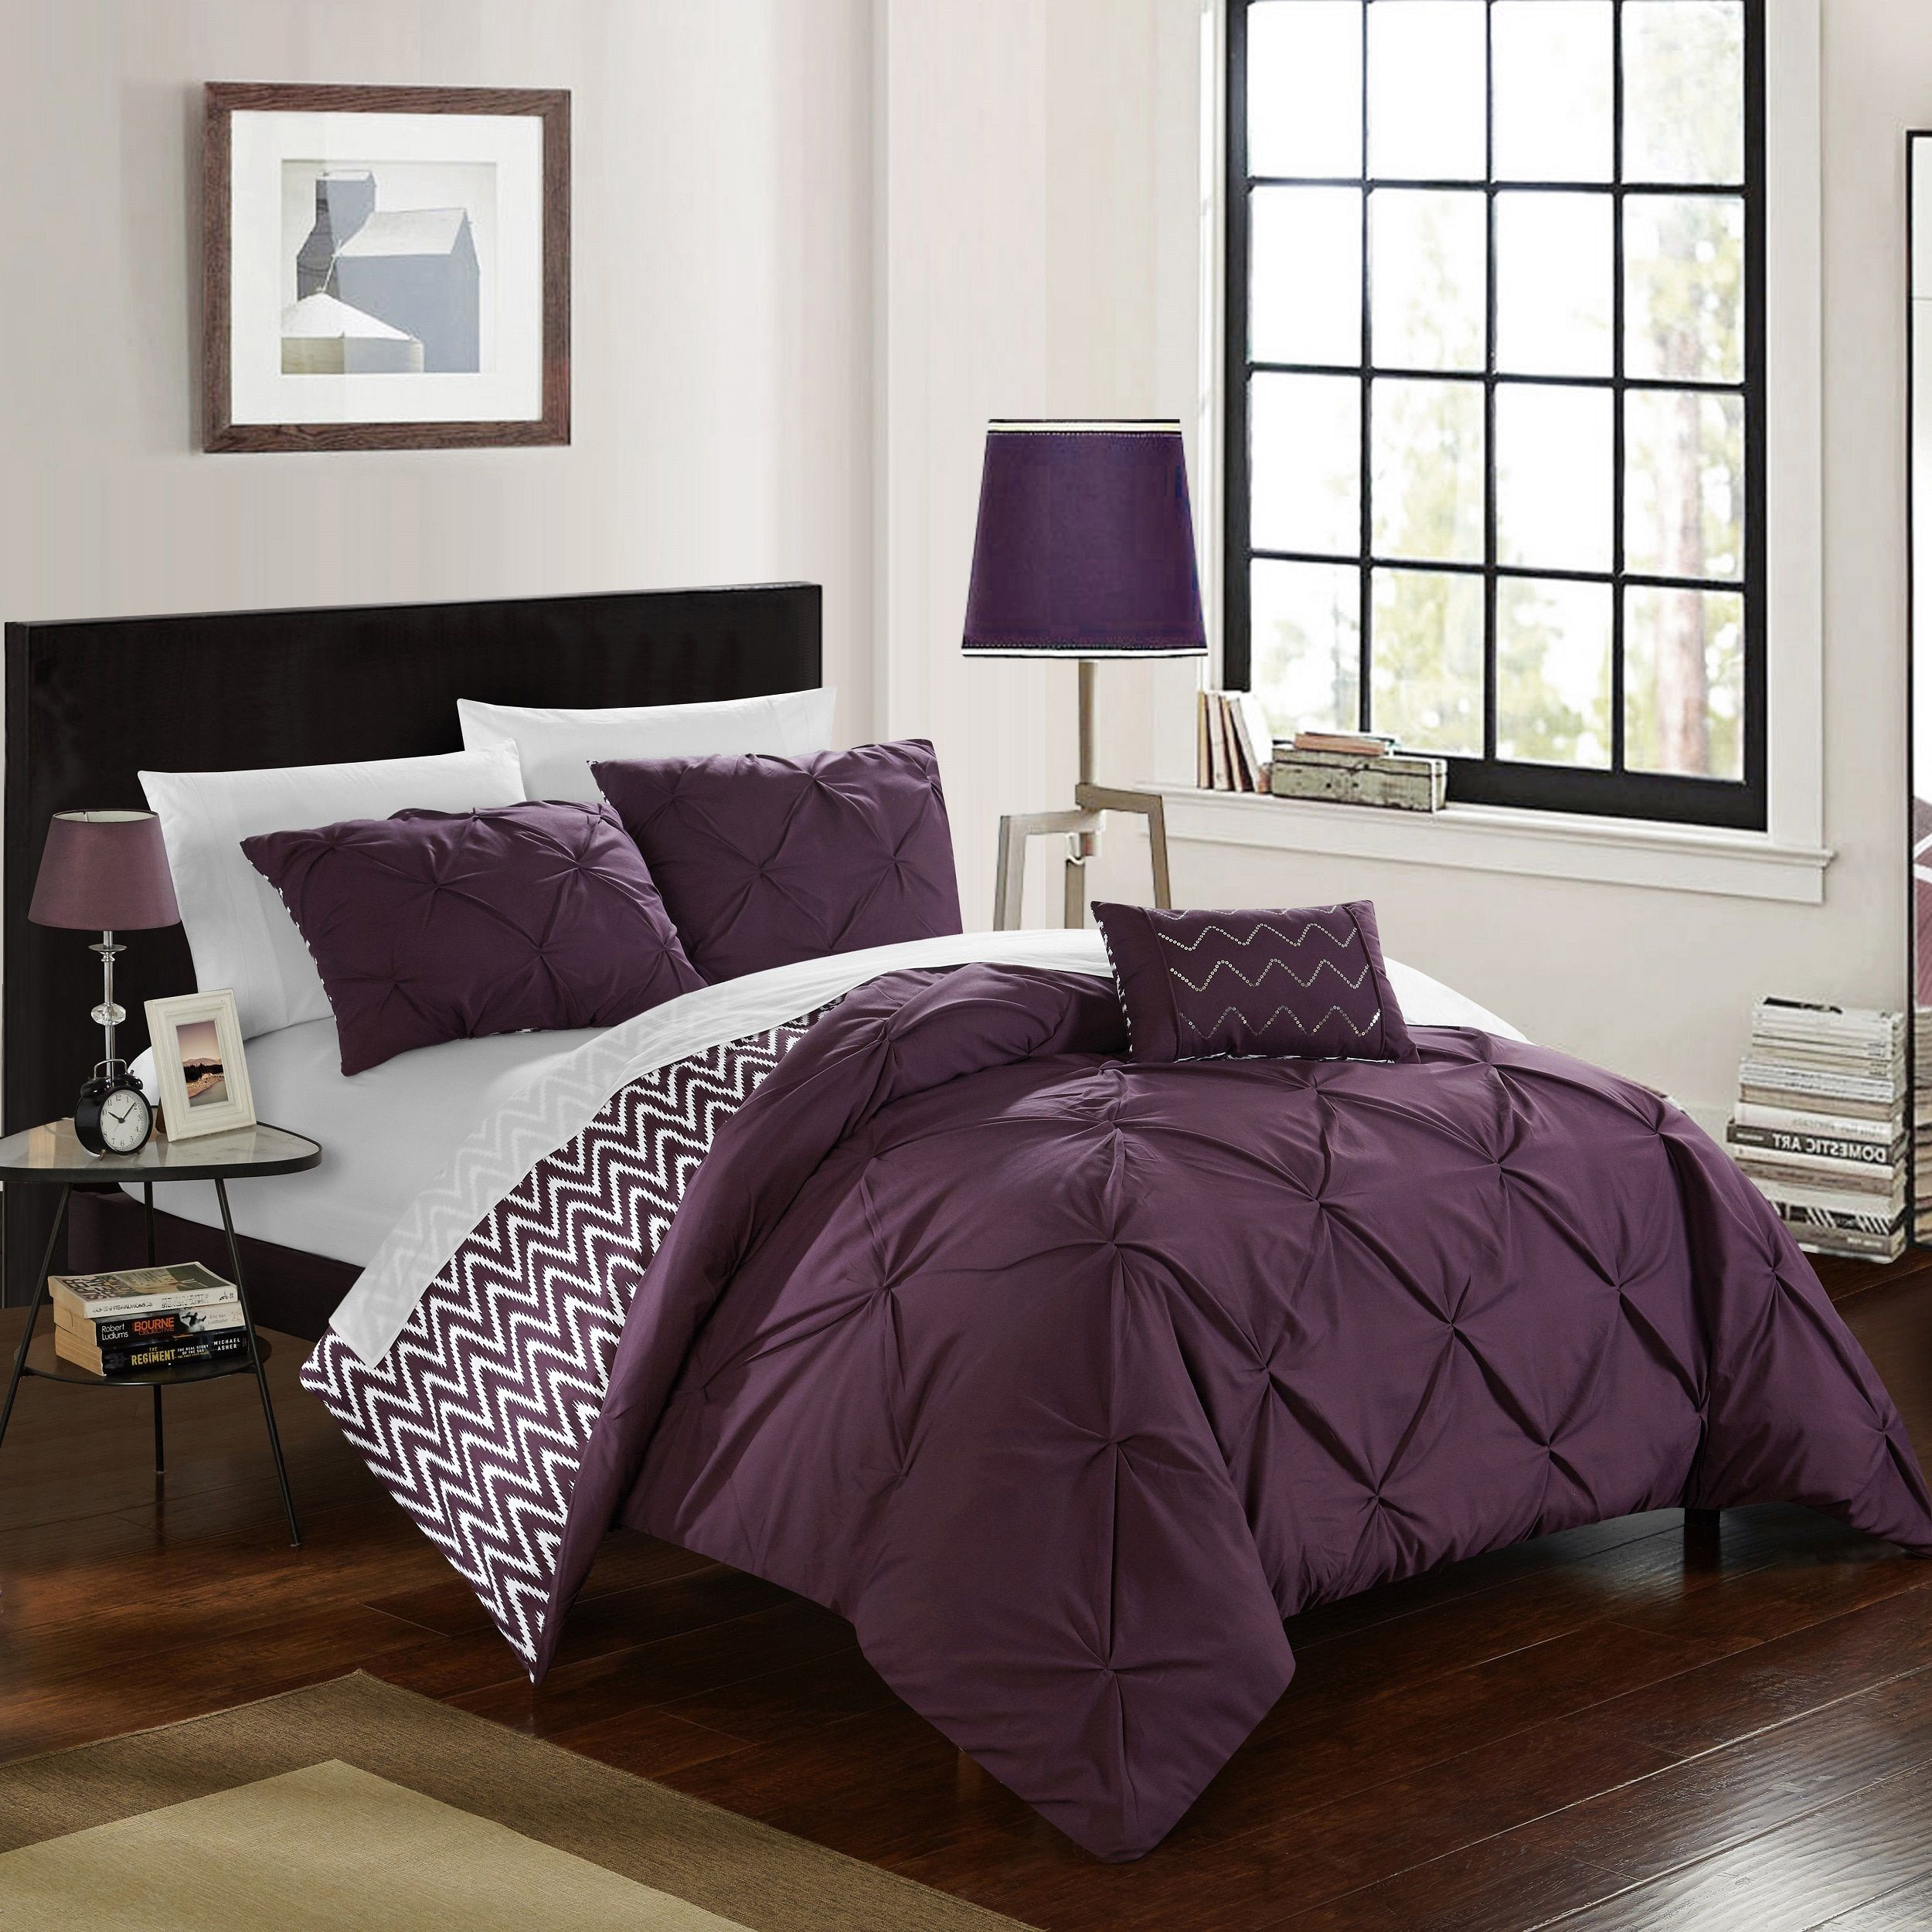 within your bedroom or bedding purple inspiration crystal residence brilliant cover cushion sets runner set bed duvet